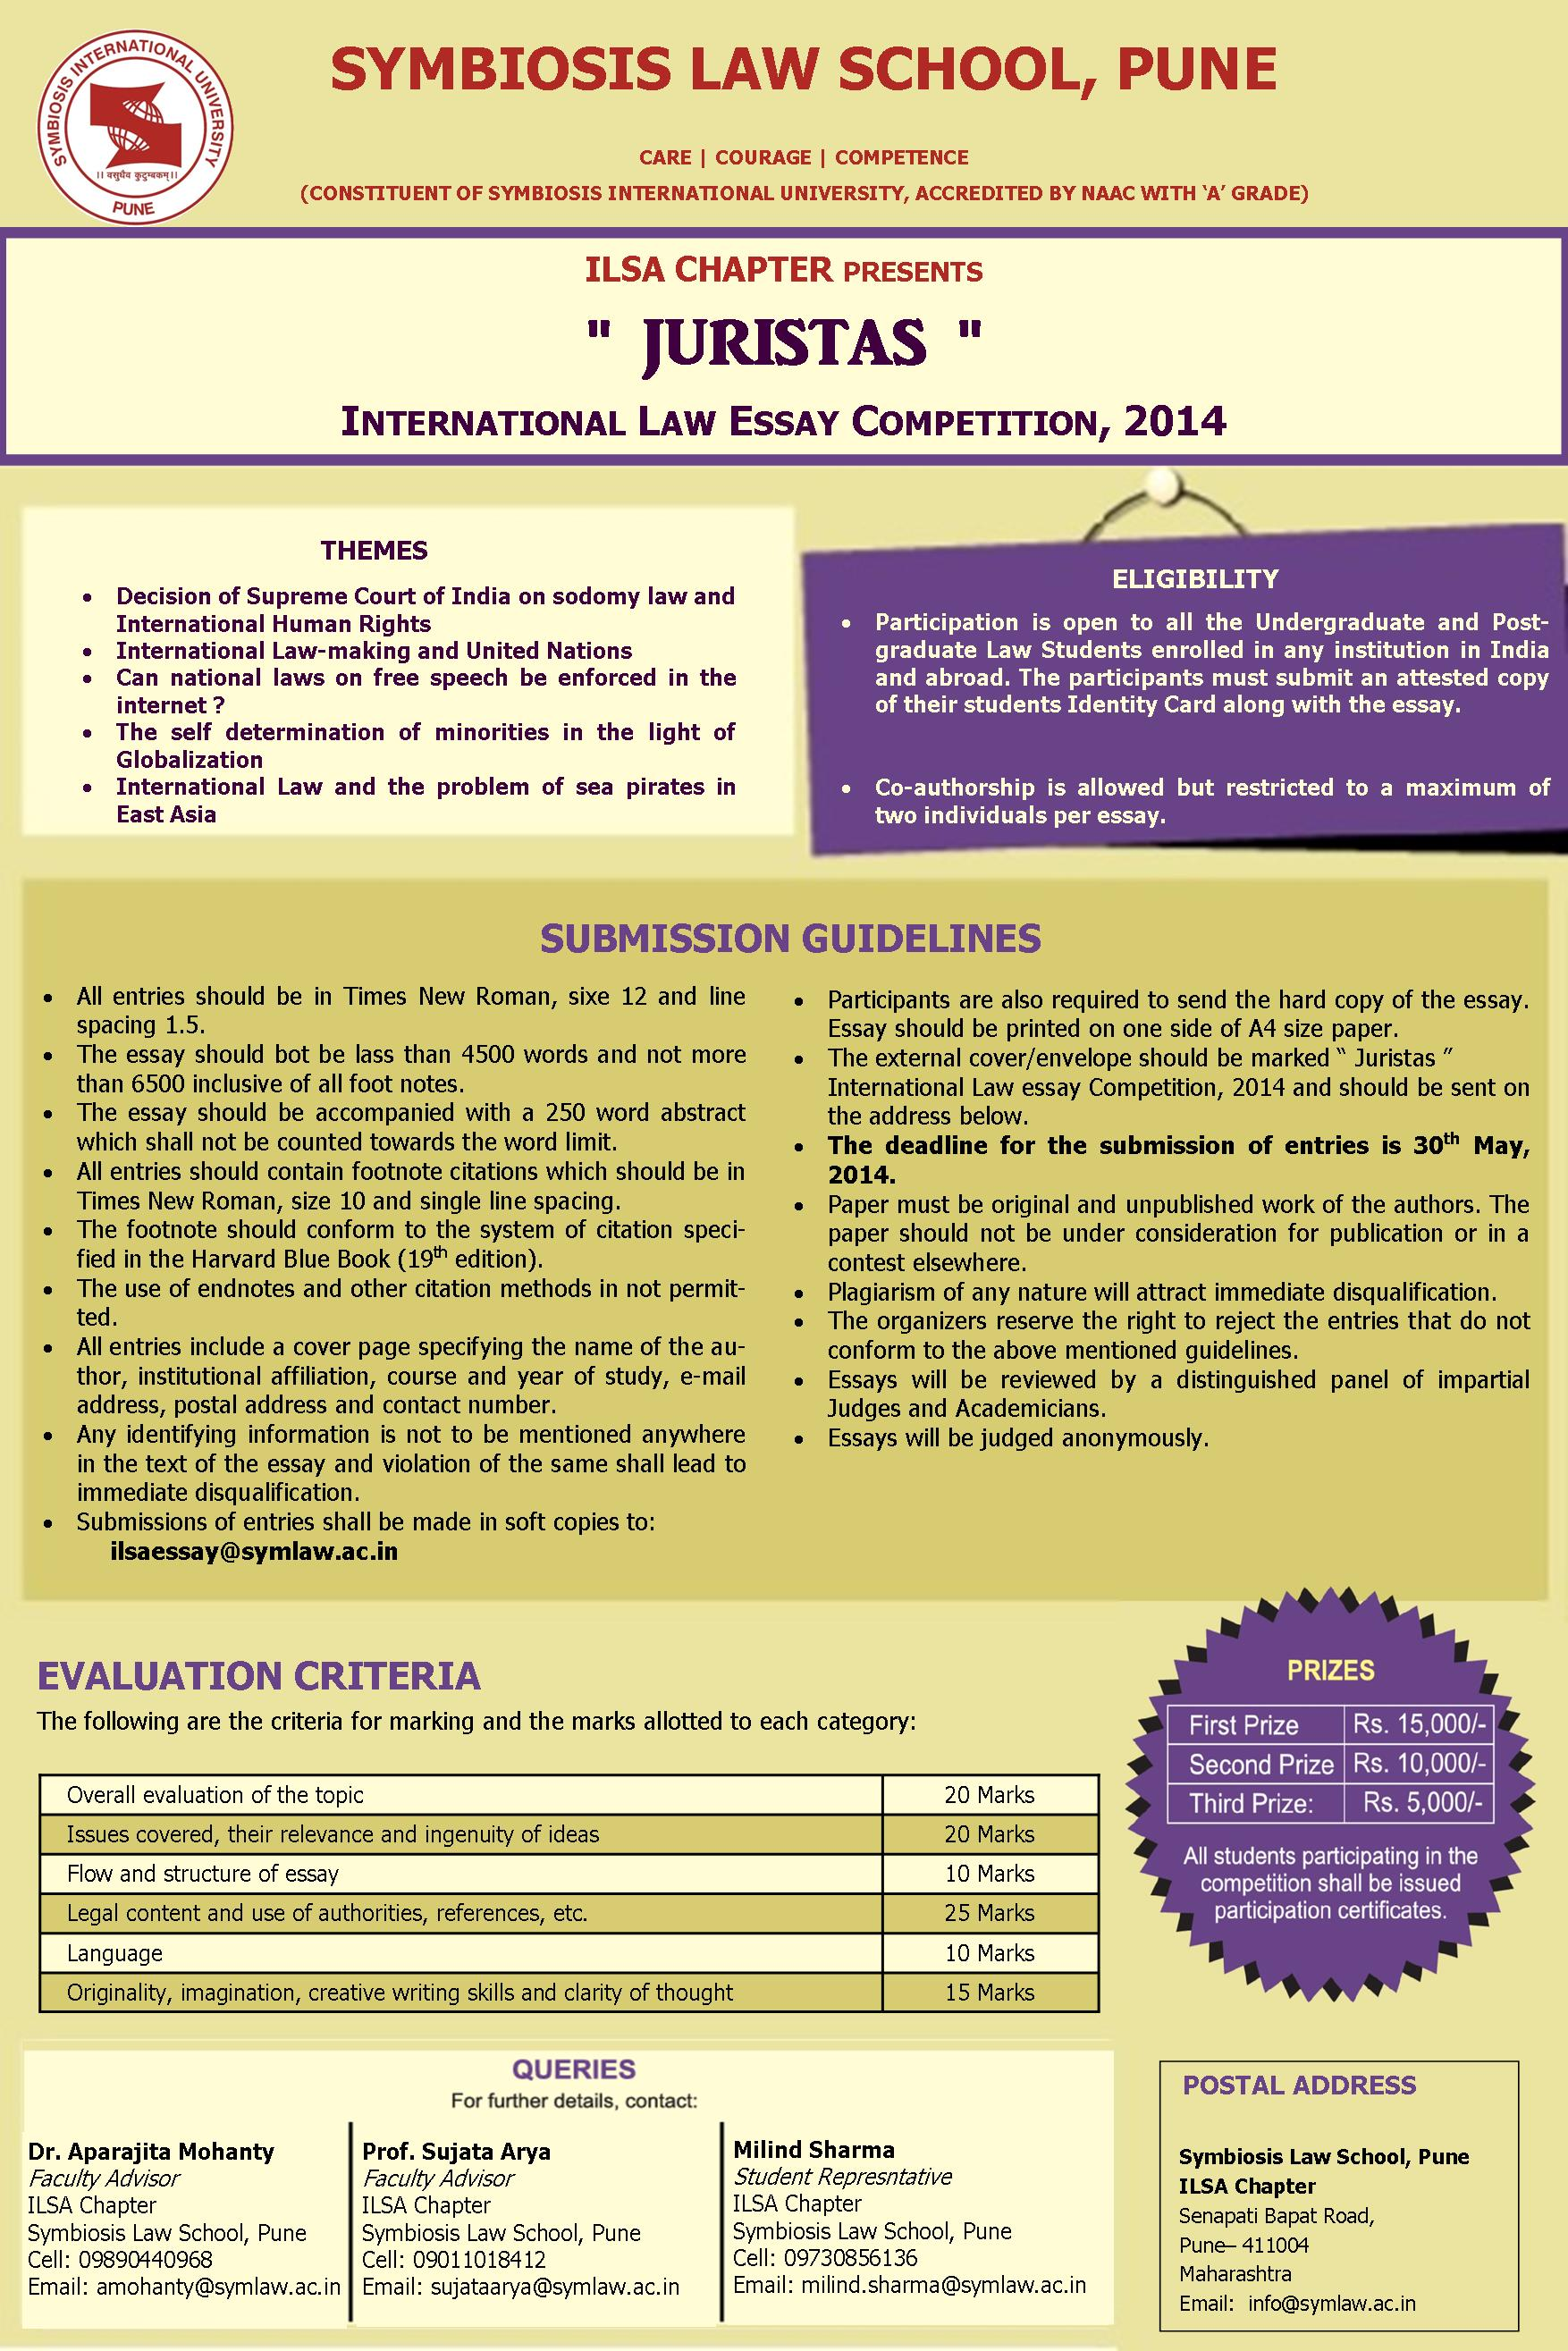 sls pune ilsa chapter s international law essay competition juristas symbiosis pune ils chapter international law essay writing competition juristas